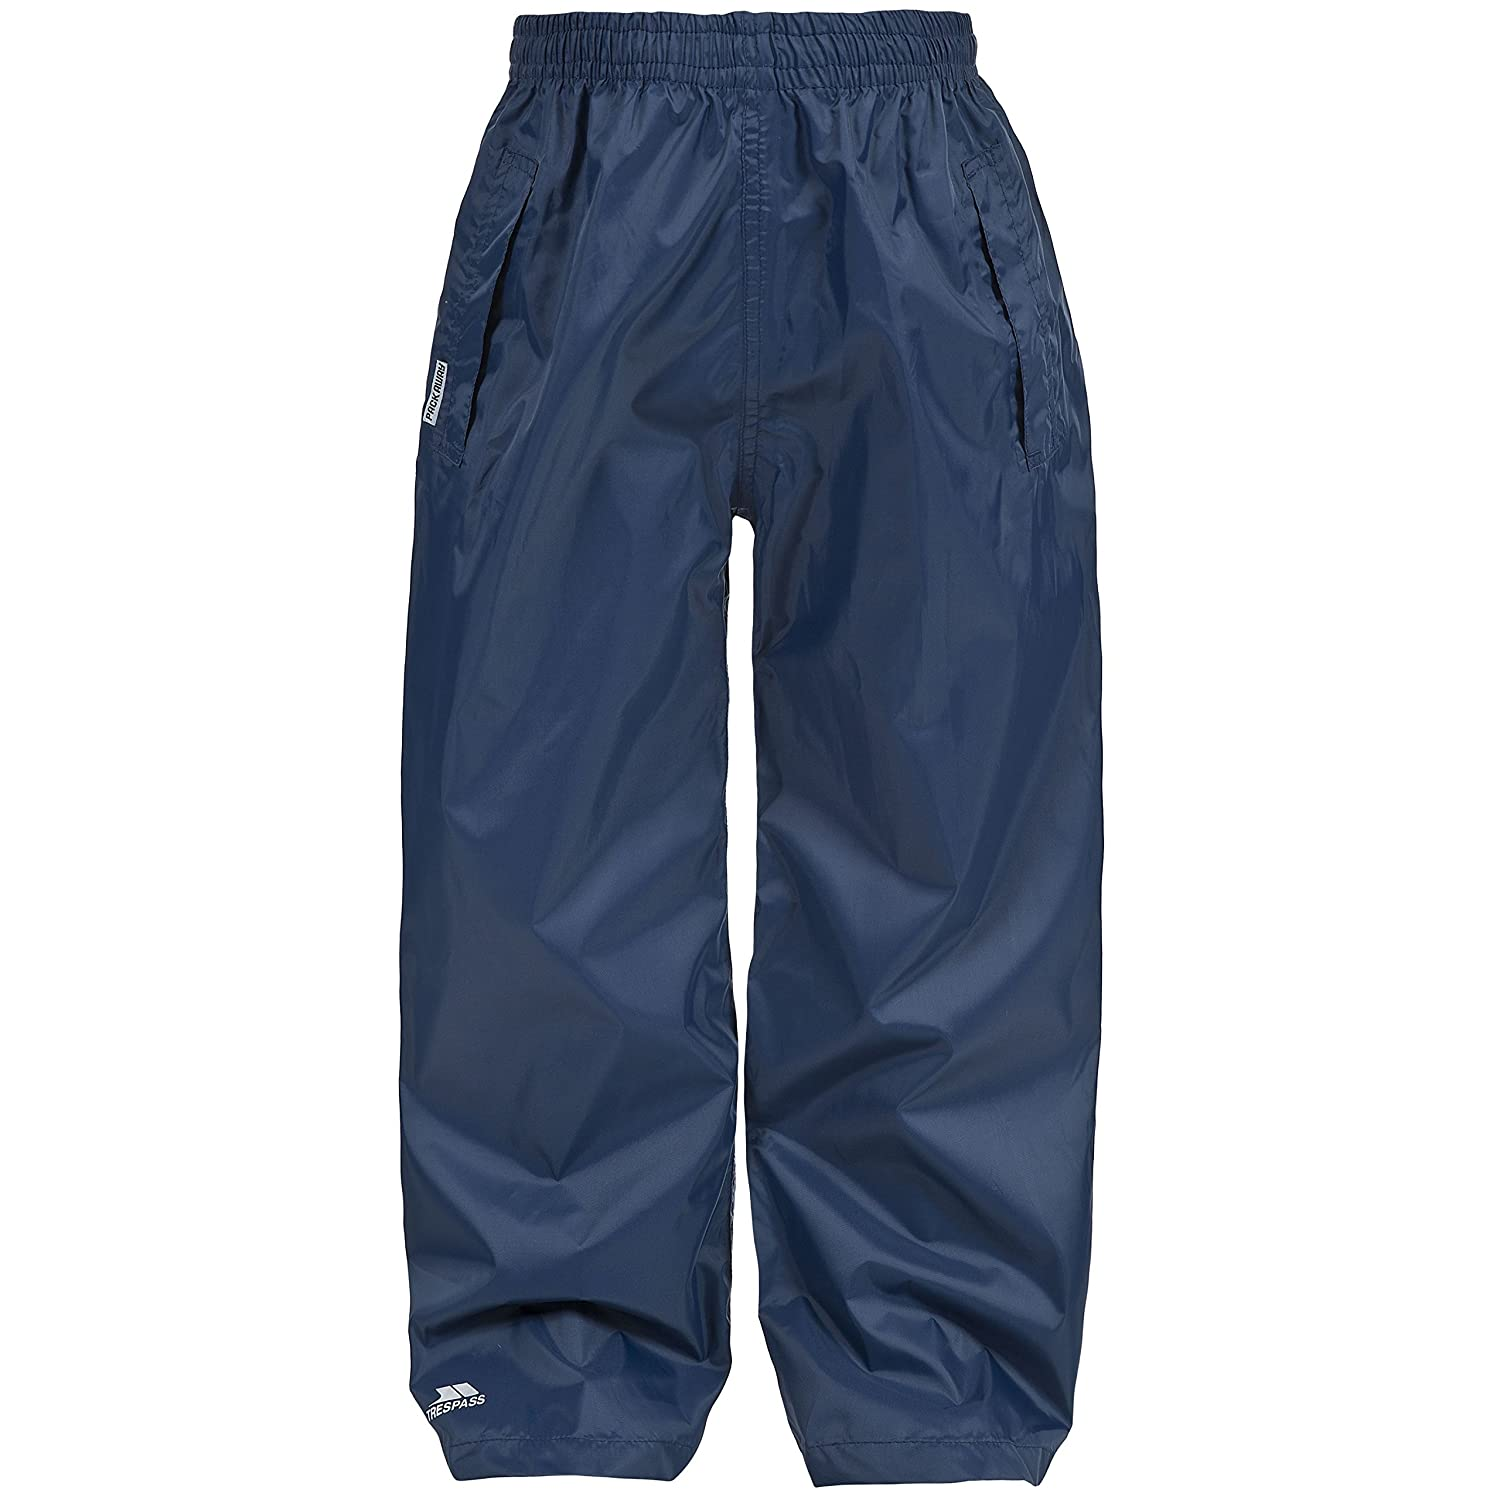 Trespass Childrens/Kids Unisex Packup Trouser Waterproof Packaway Trousers